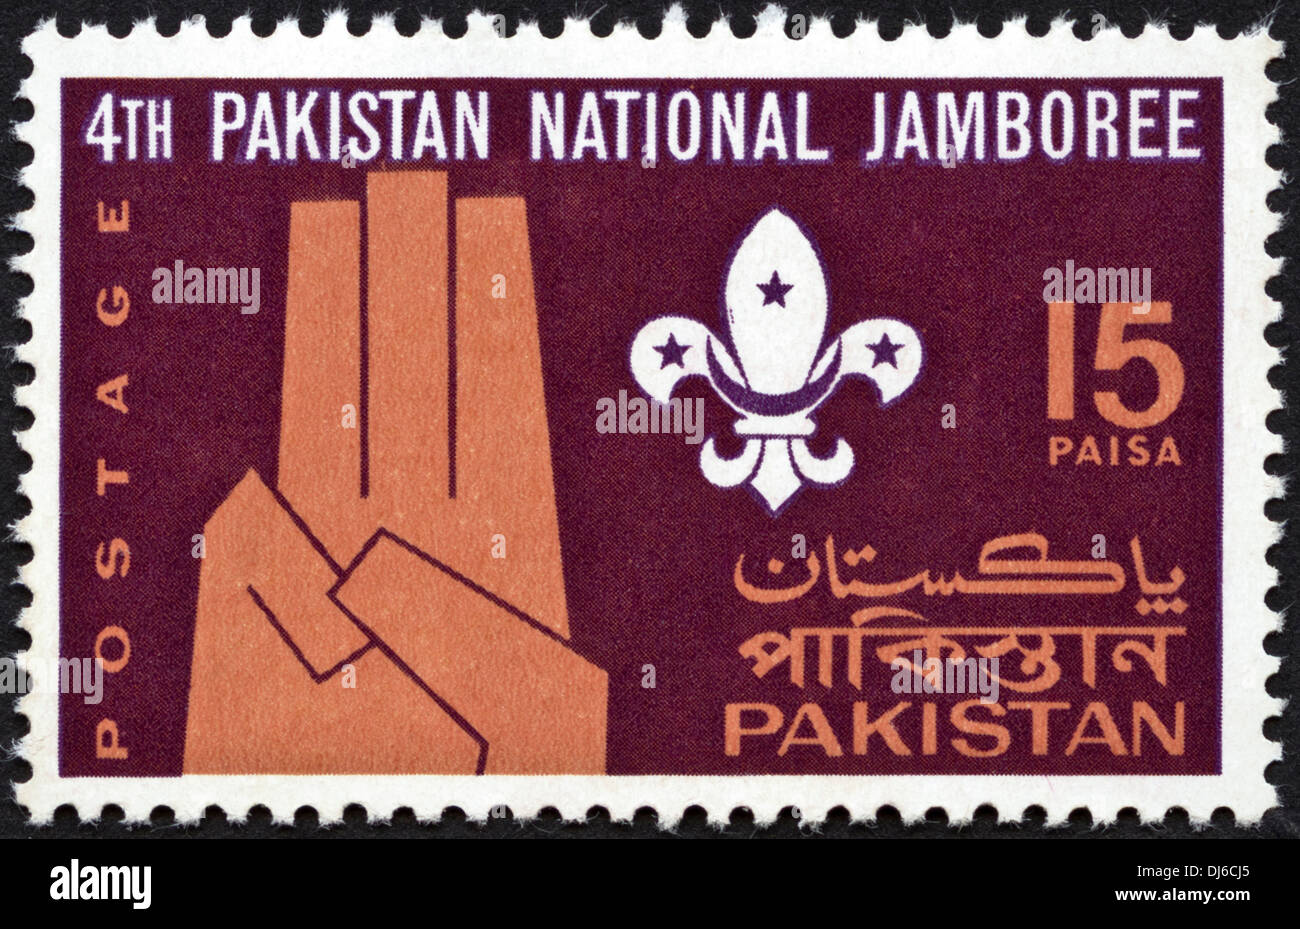 postage stamp Pakistan 15 Paisa featuring Boy Scouts 4th Pakistan National Jamboree dated 1967 - Stock Image